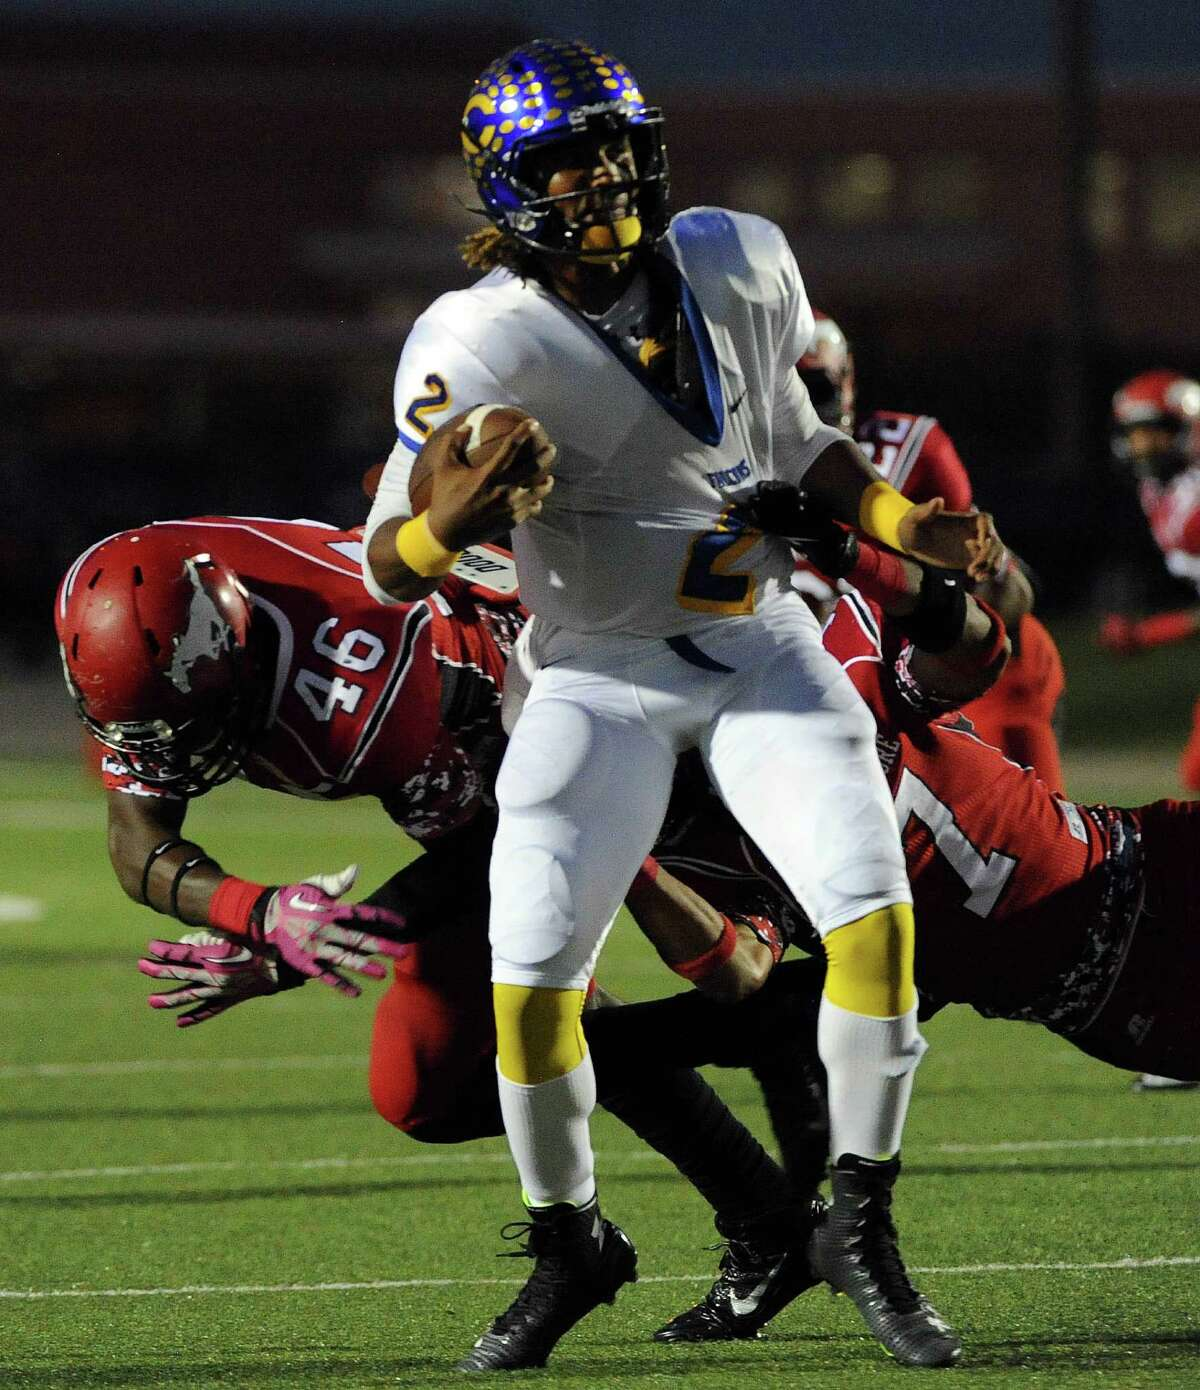 Quarterback Jalen Hurts, Channelview Height: 6-3, Weight: 208 Committed to: Alabama